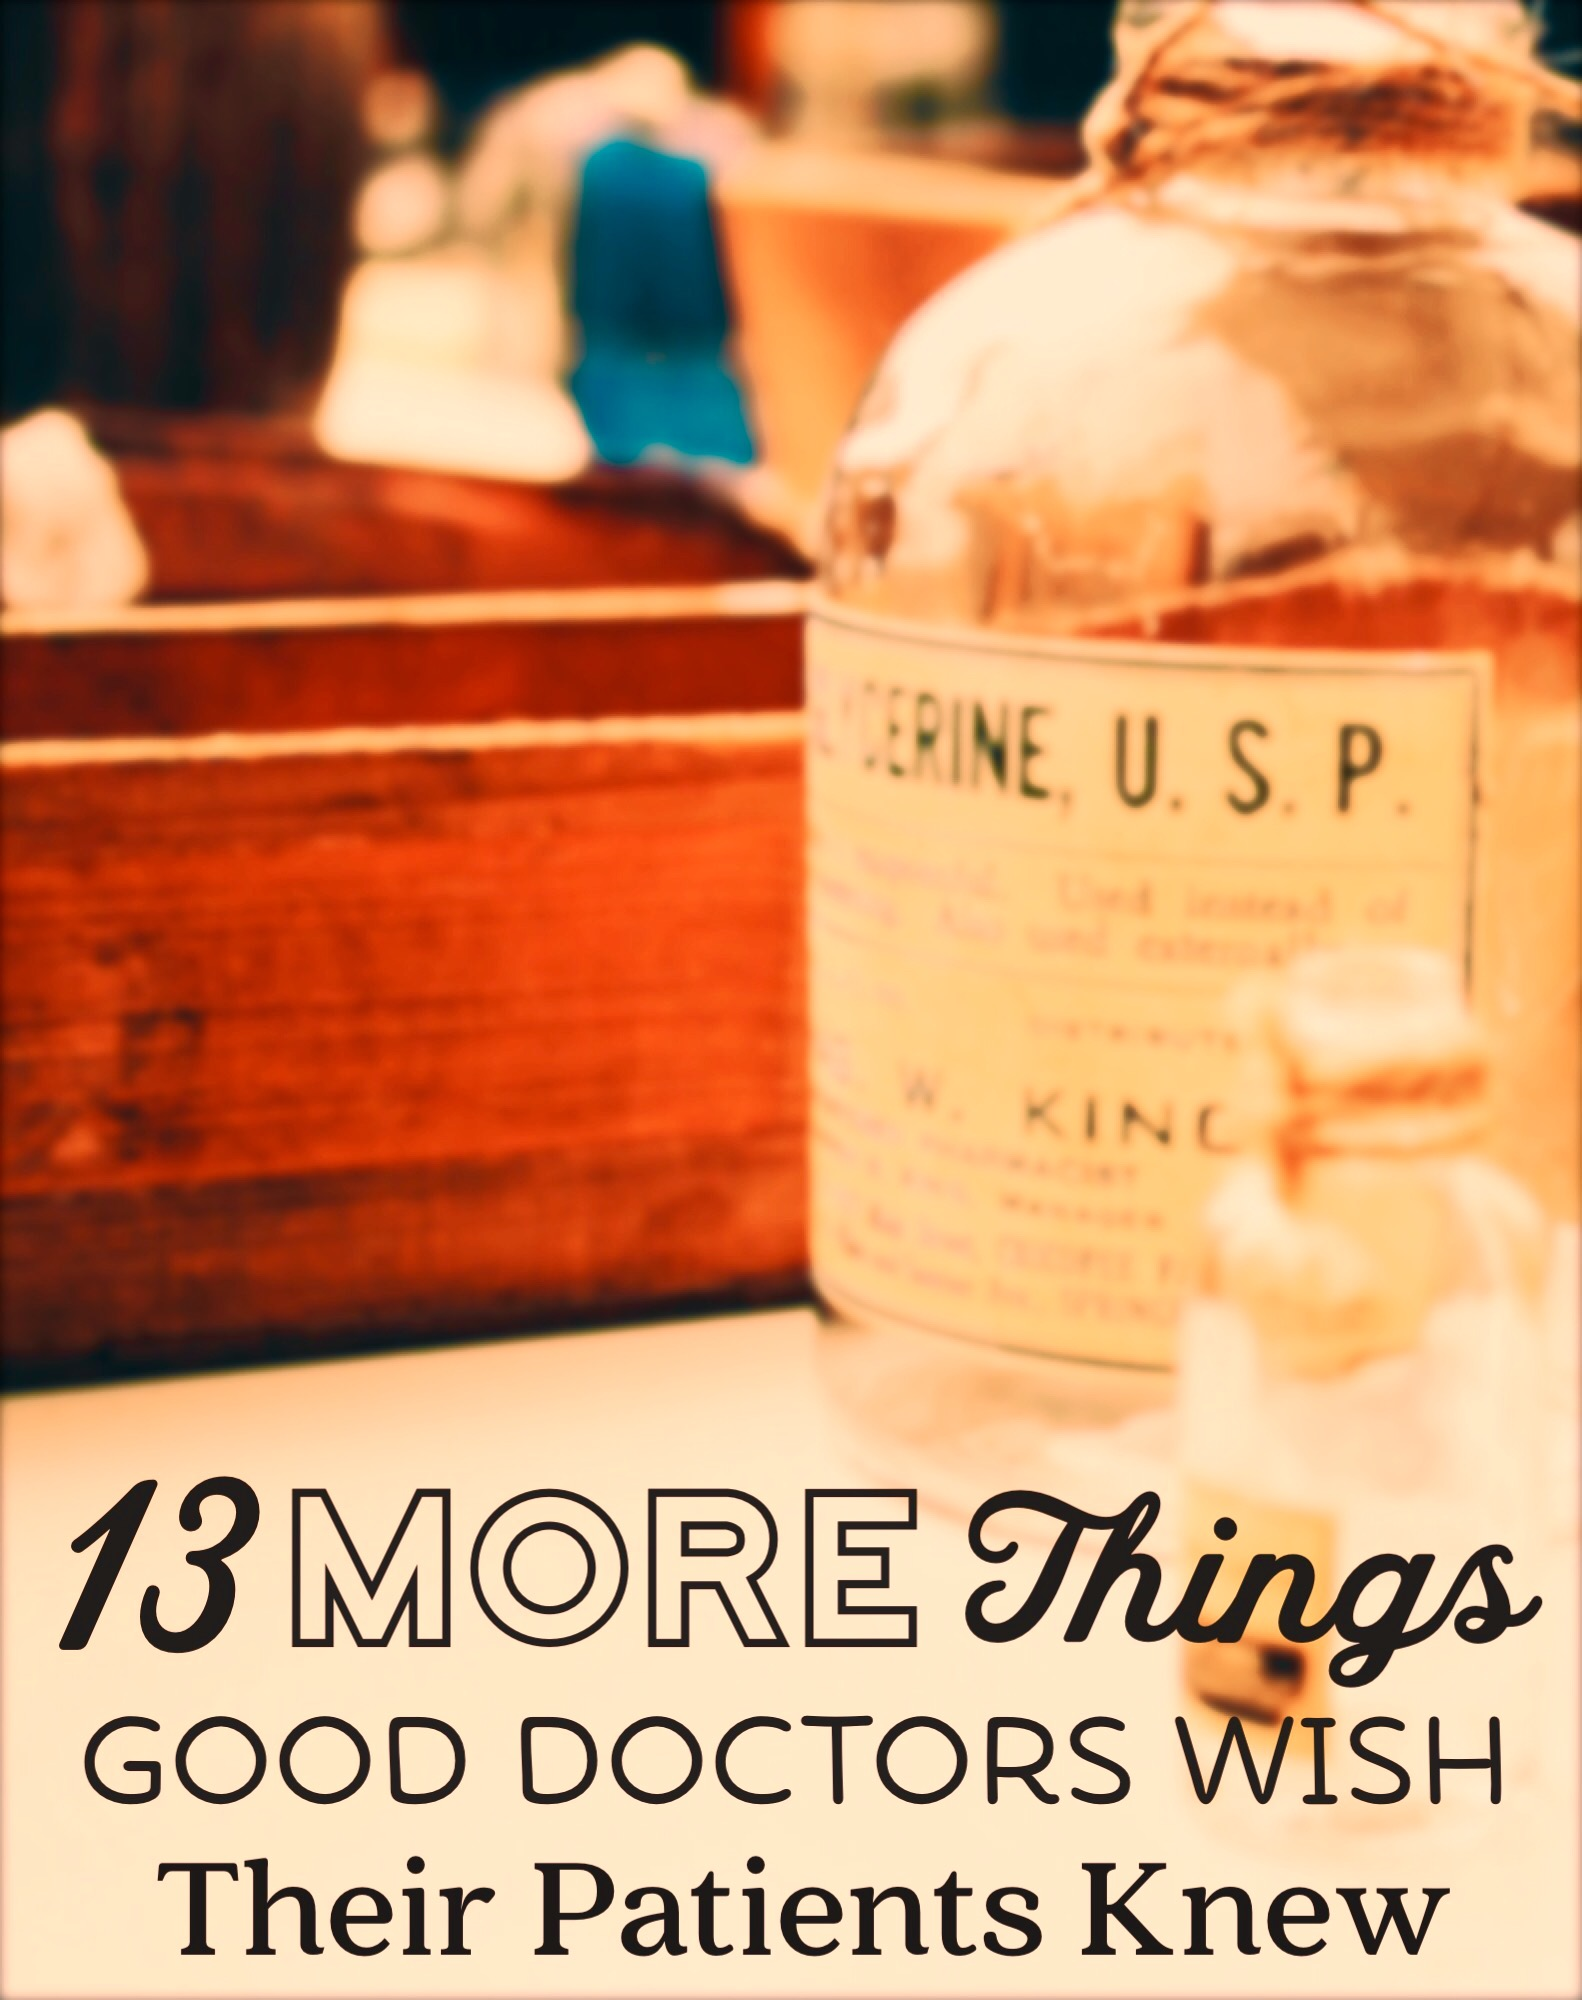 13 MORE Things Good Doctors Wish Their Patients Knew - Demystifying the Doctor Patient Relationship | https:/cozyclothesblog.com